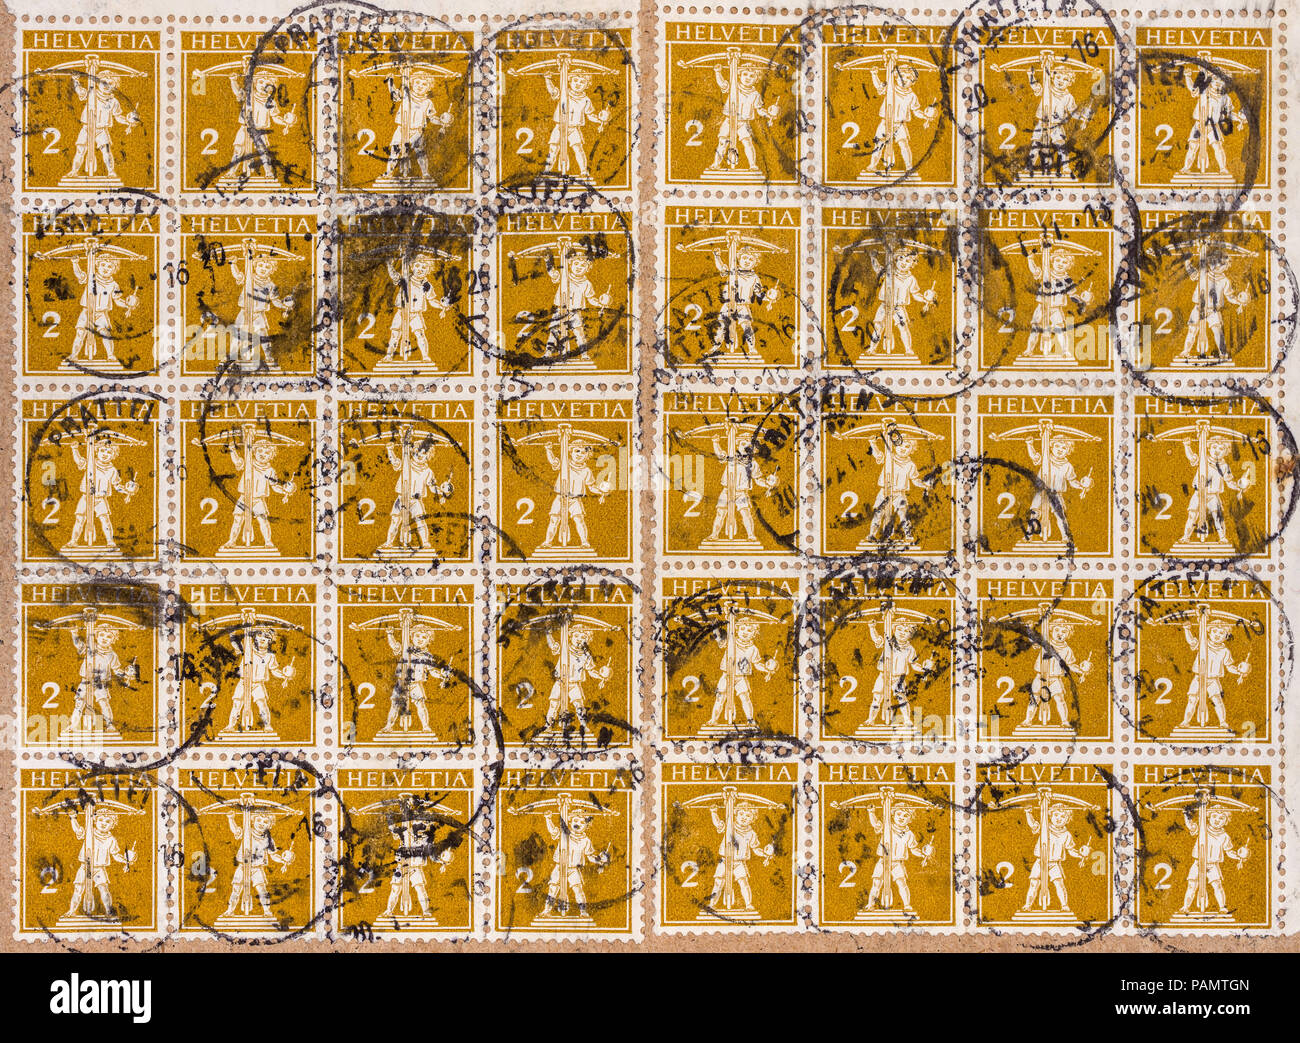 40 cancelled 2-cent Swiss 'Tell' 1910 postage stamps on parcel wrapper. - Stock Image